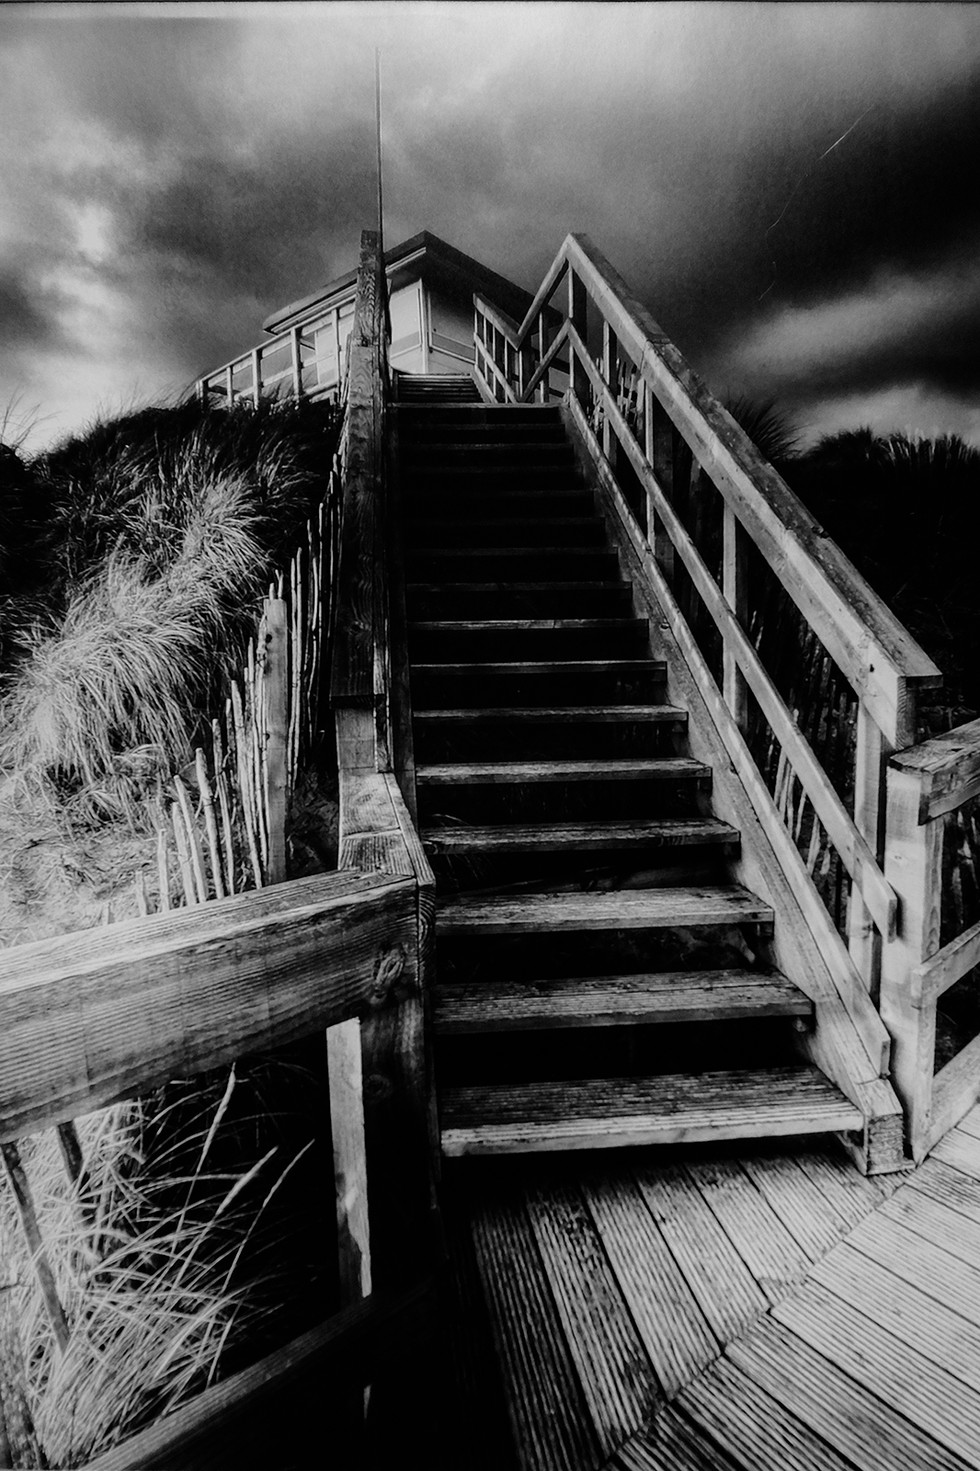 MONO - Stairway to Heaven - Led Zeppelin by G Cassidy (8 marks)